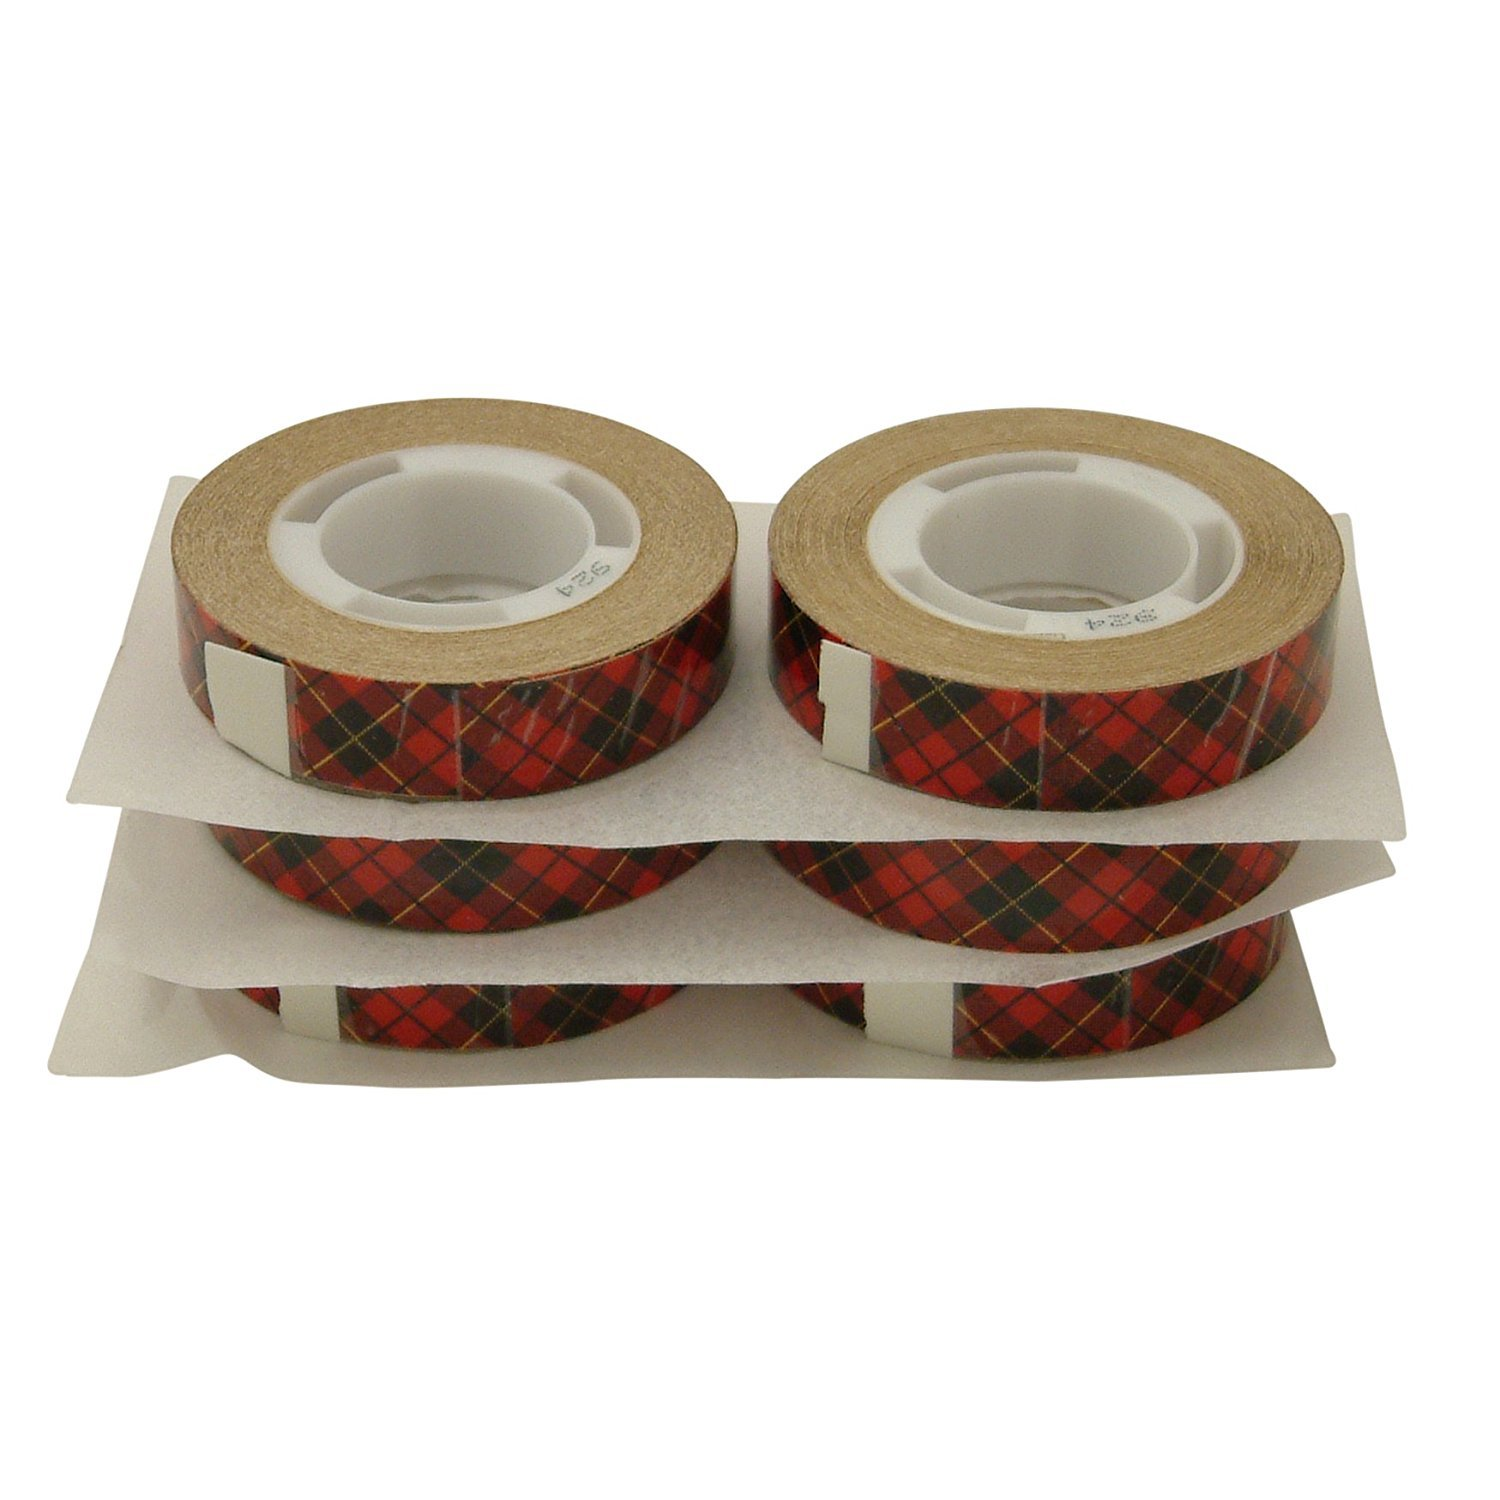 Set of 2 3M Scotch ATG Adhesive Transfer Tape 924 Bundled by Maven Gifts by 3M-Construction and Home Improvements (Image #5)